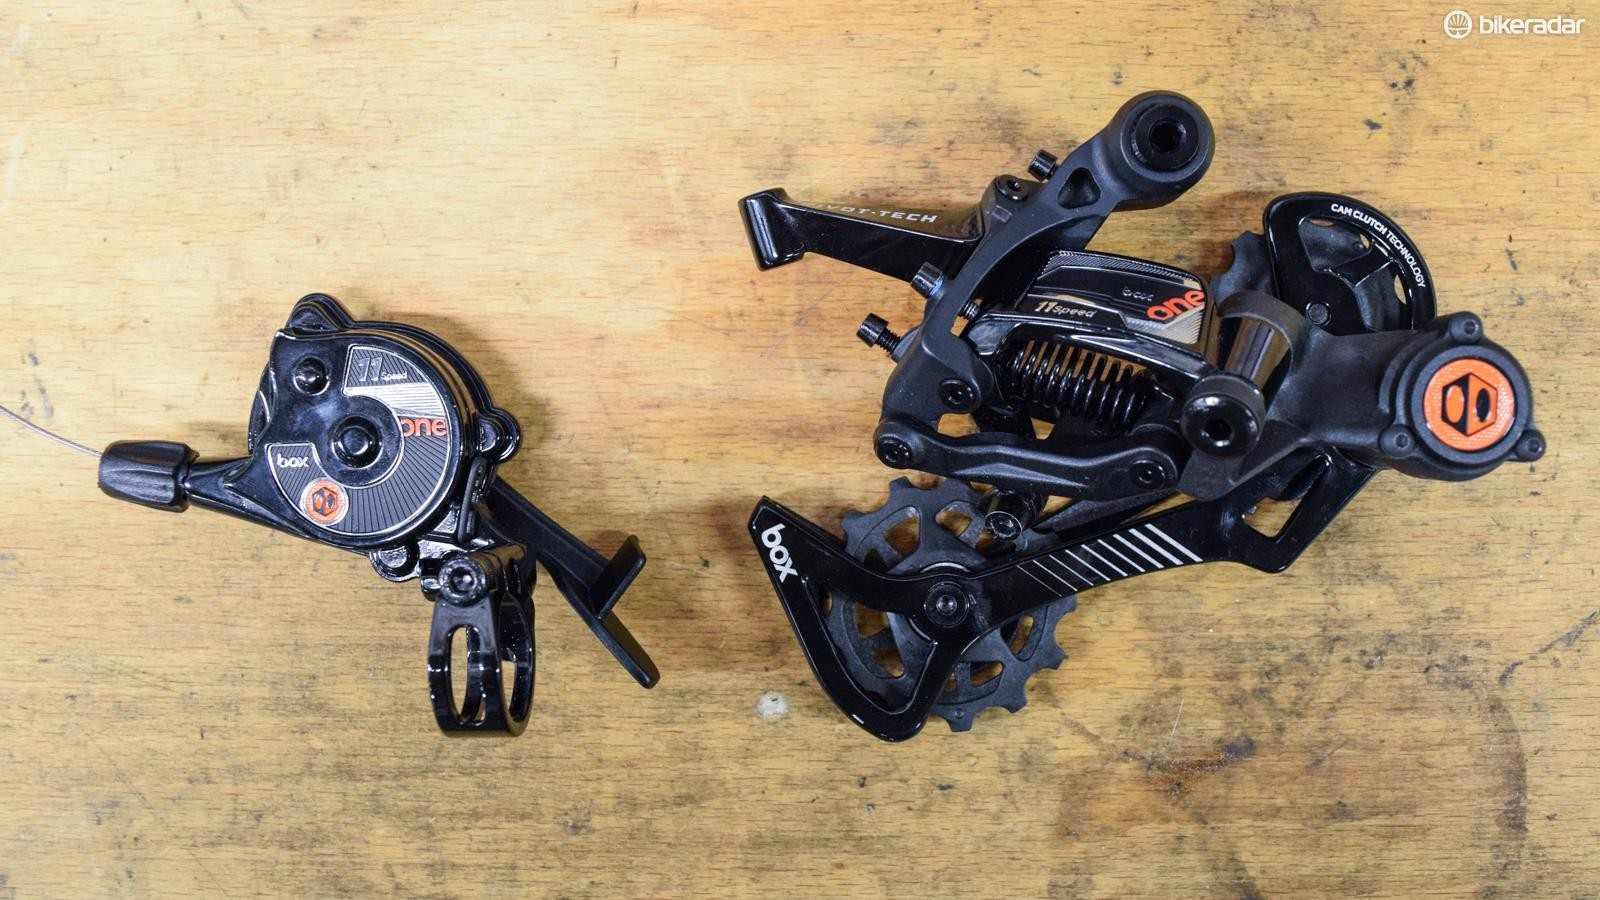 Box Components has an intriguing new 'push-push' shifter and derailleur